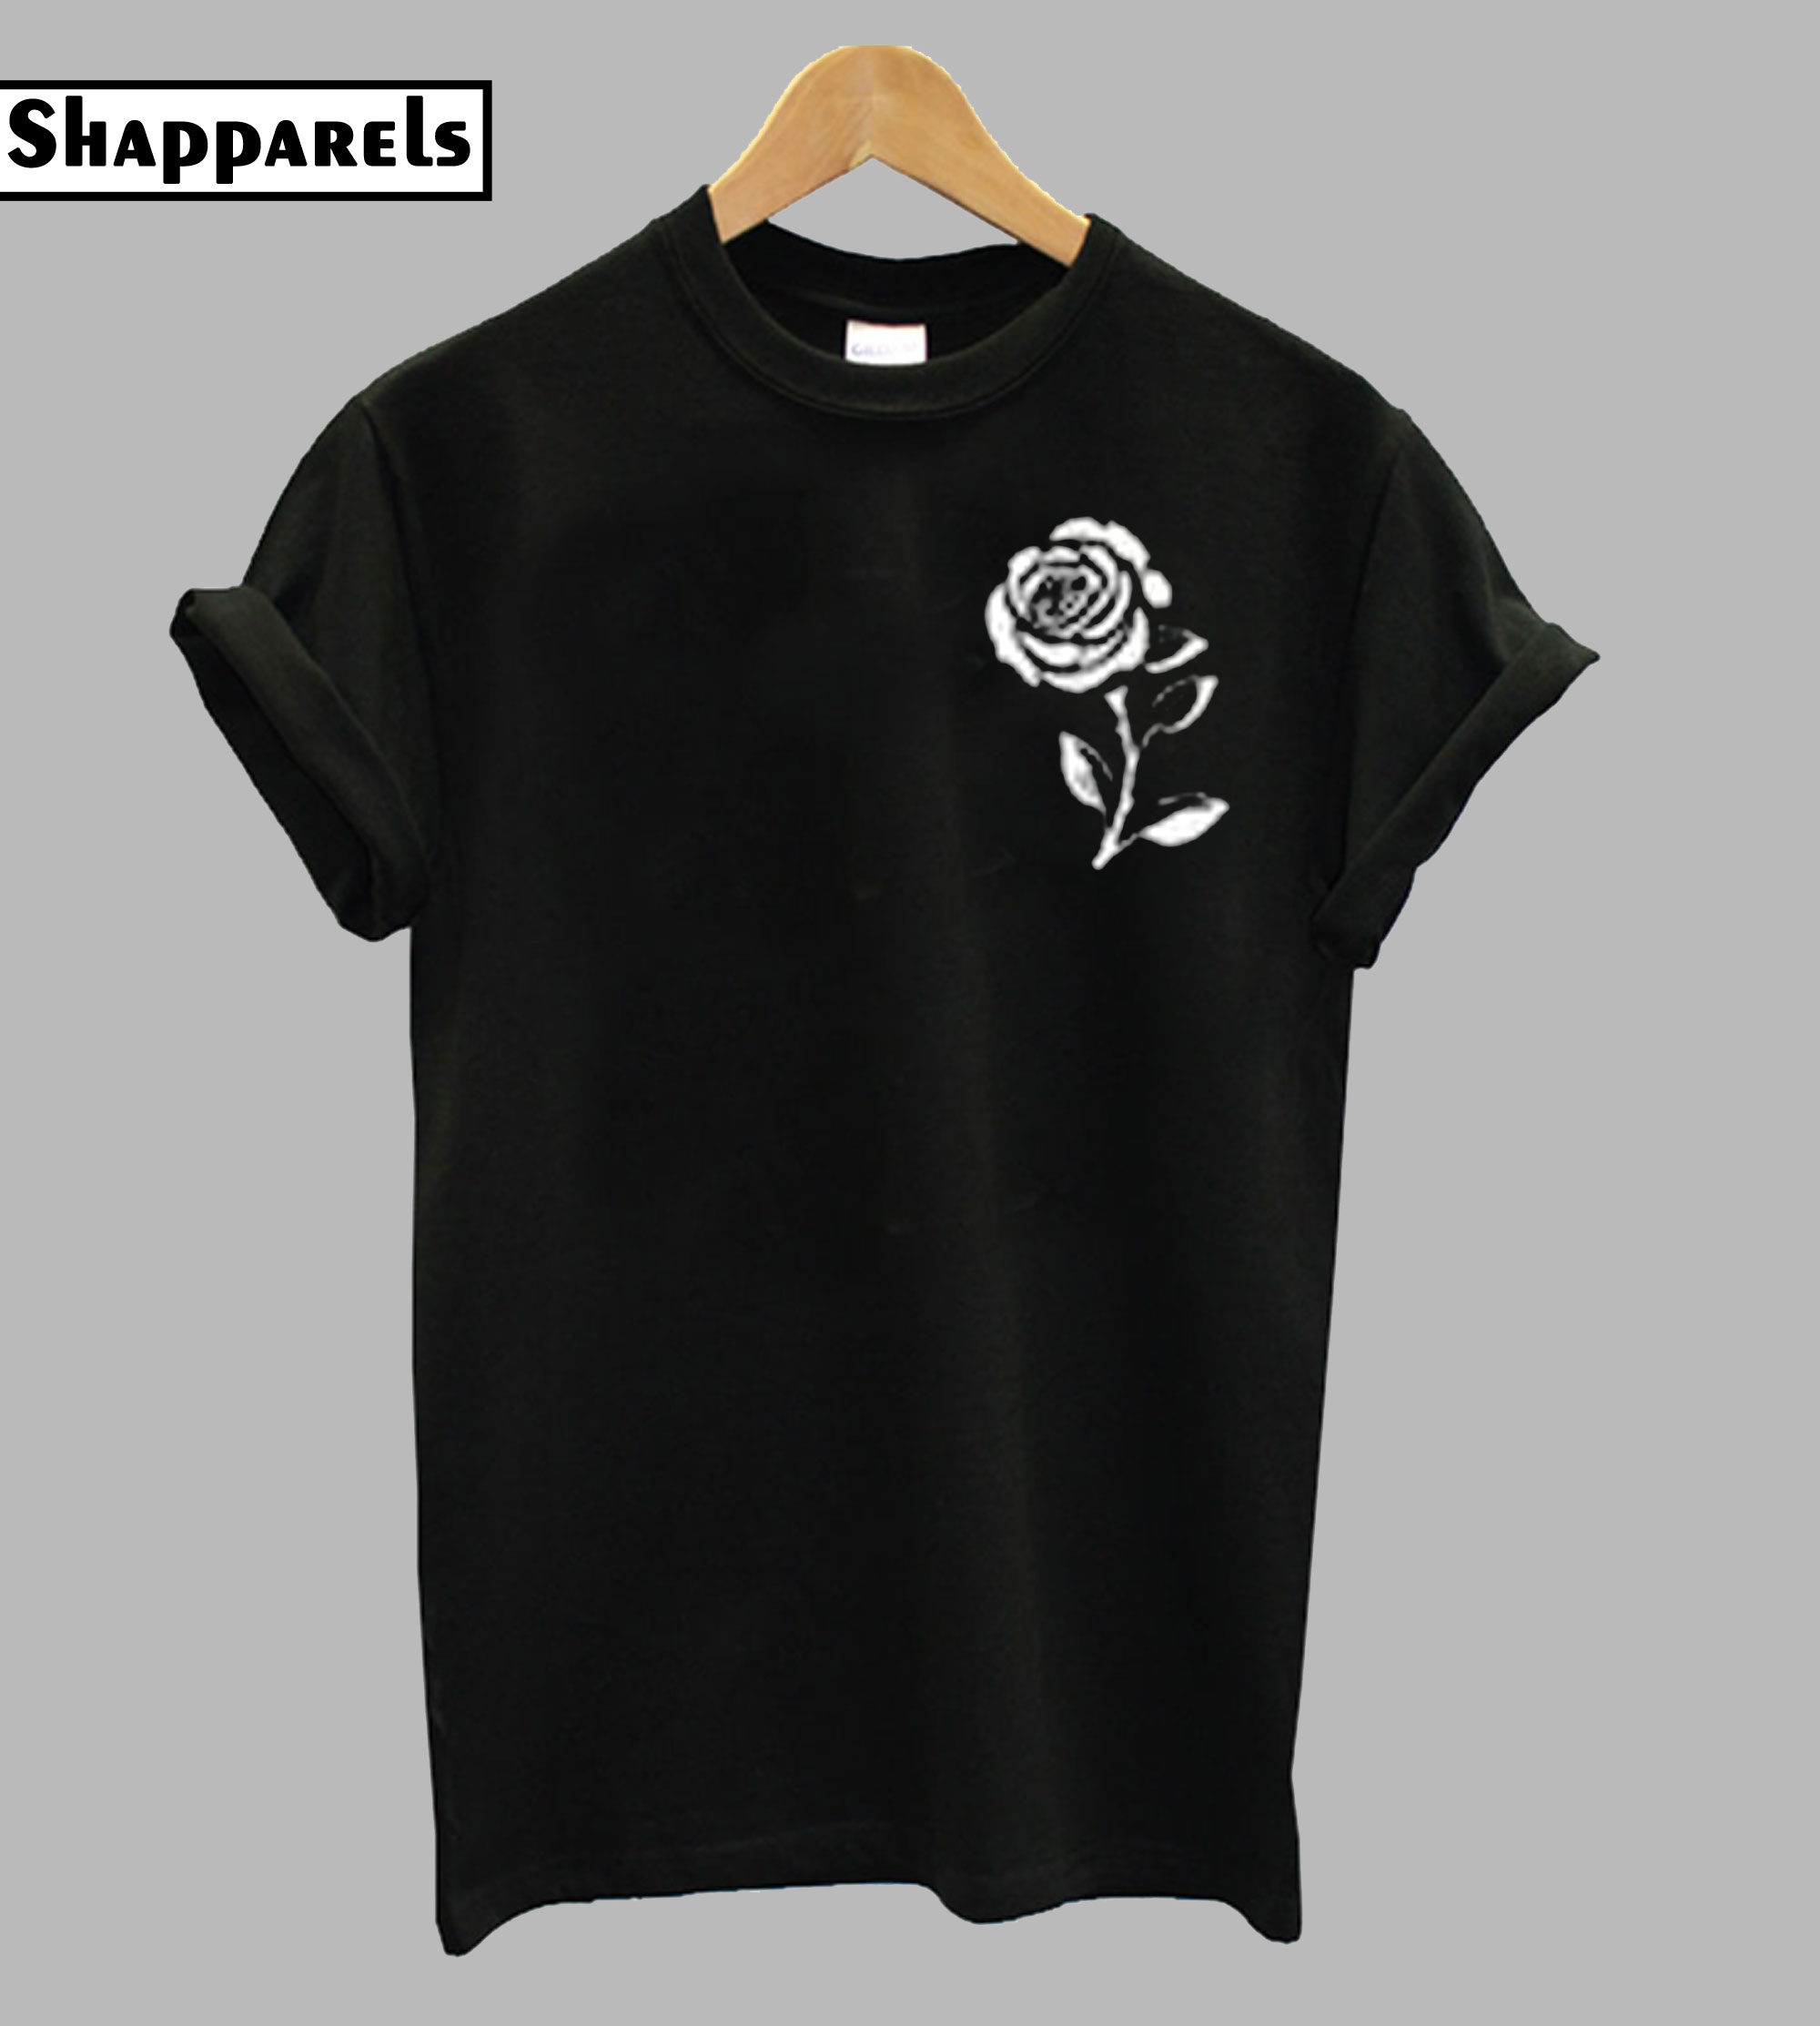 Whith Rose T-Shirt